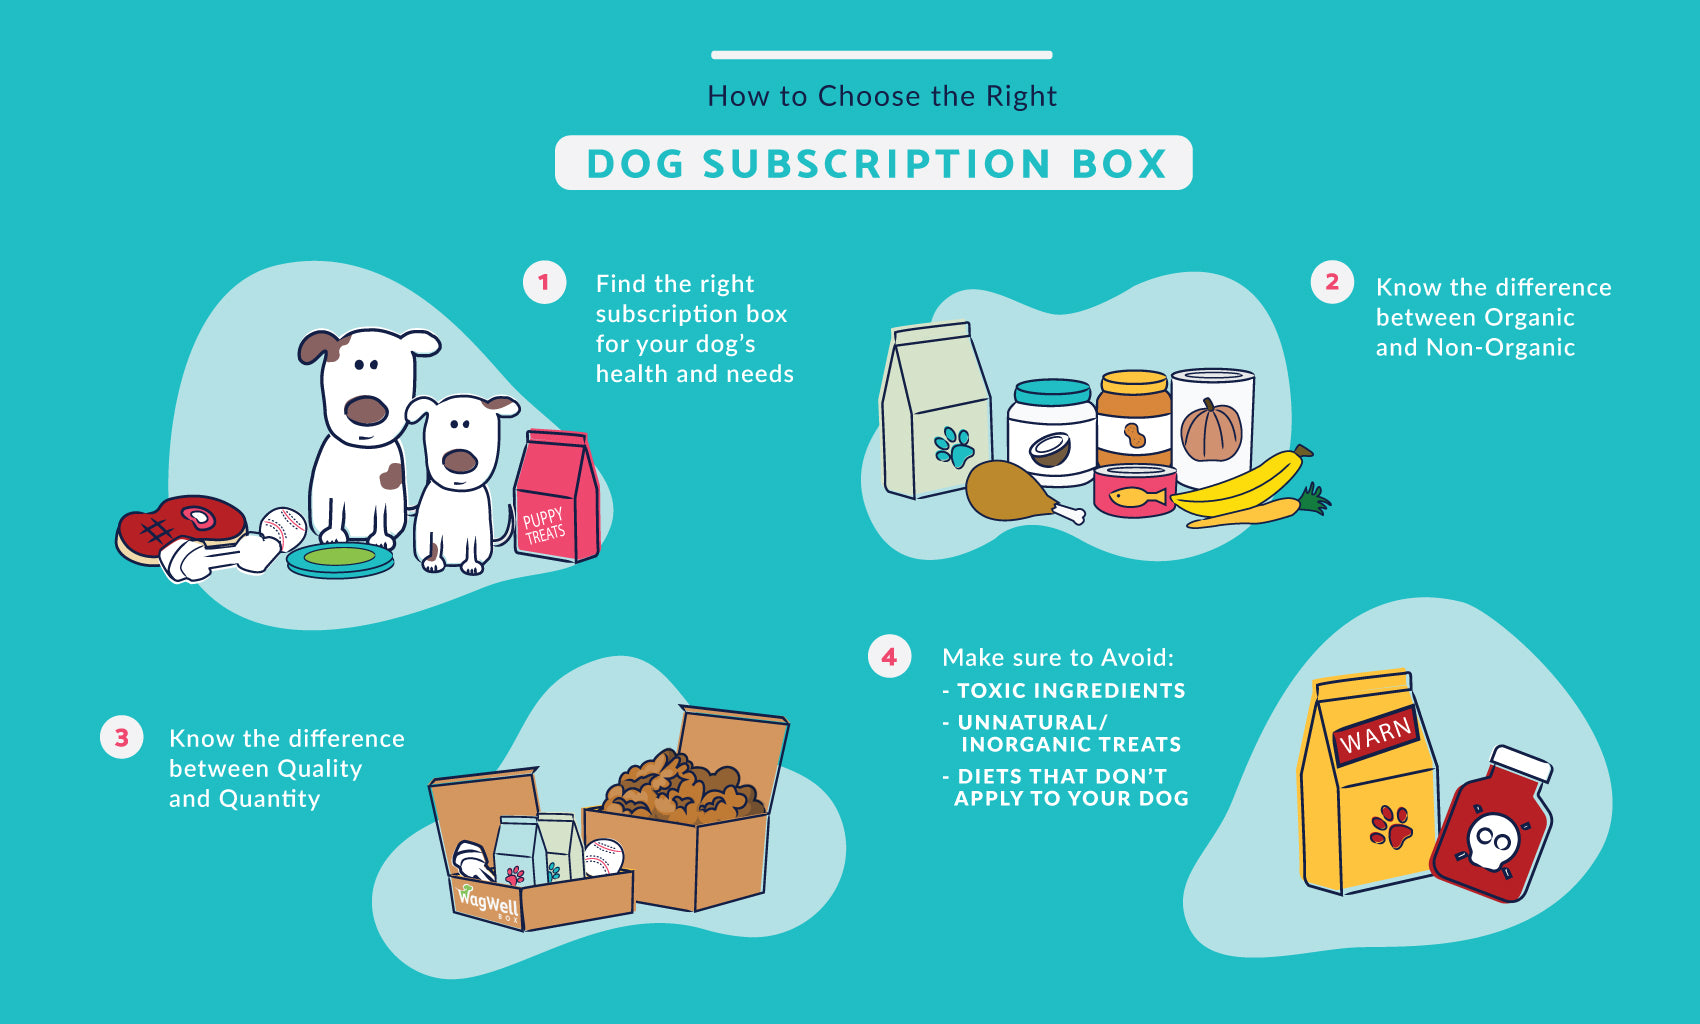 Wagwell monthly dog box subsription info graphic